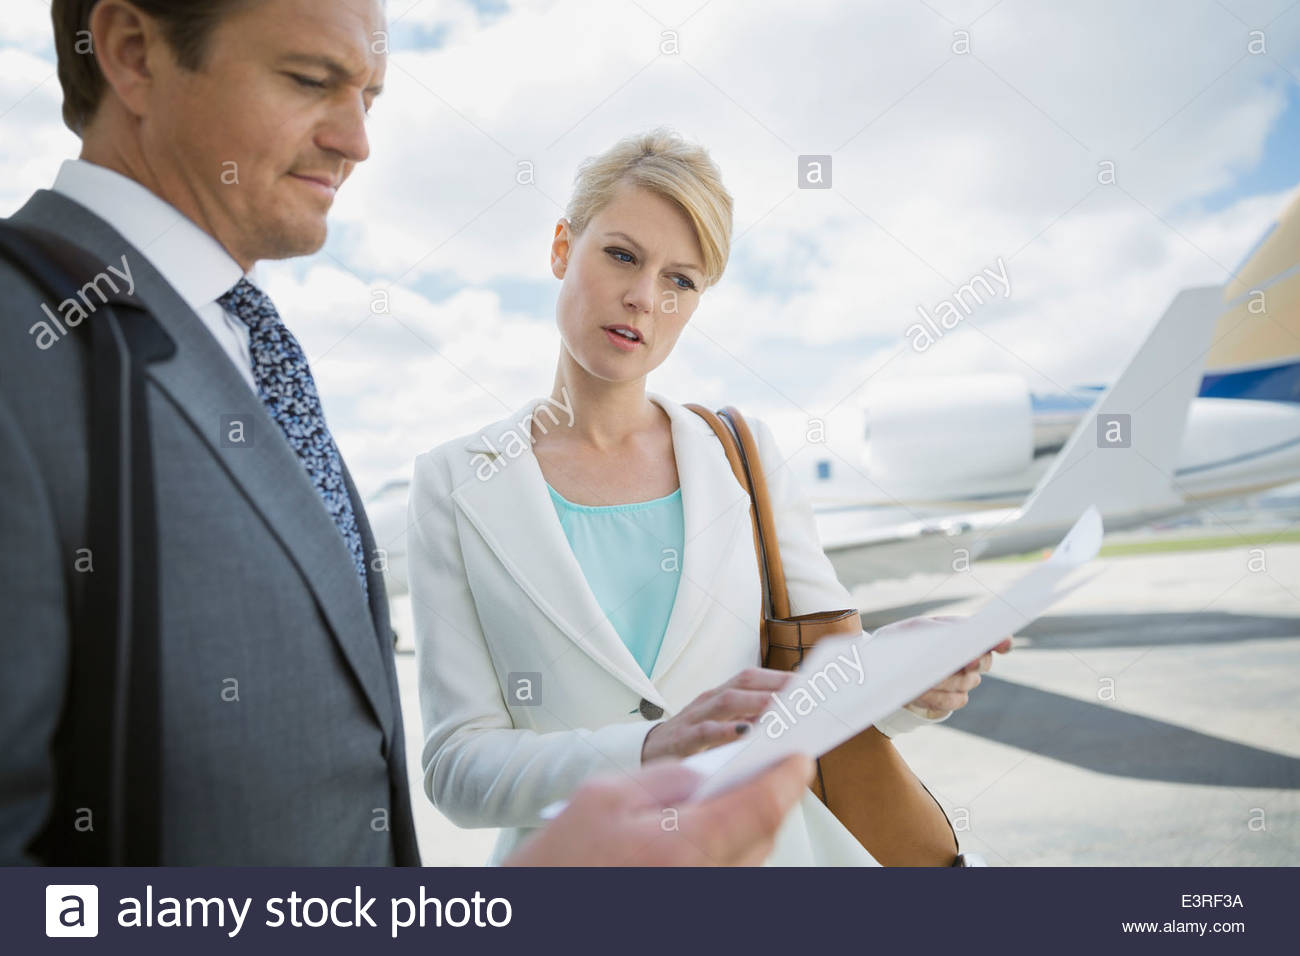 Business people reviewing paperwork on tarmac - Stock Image